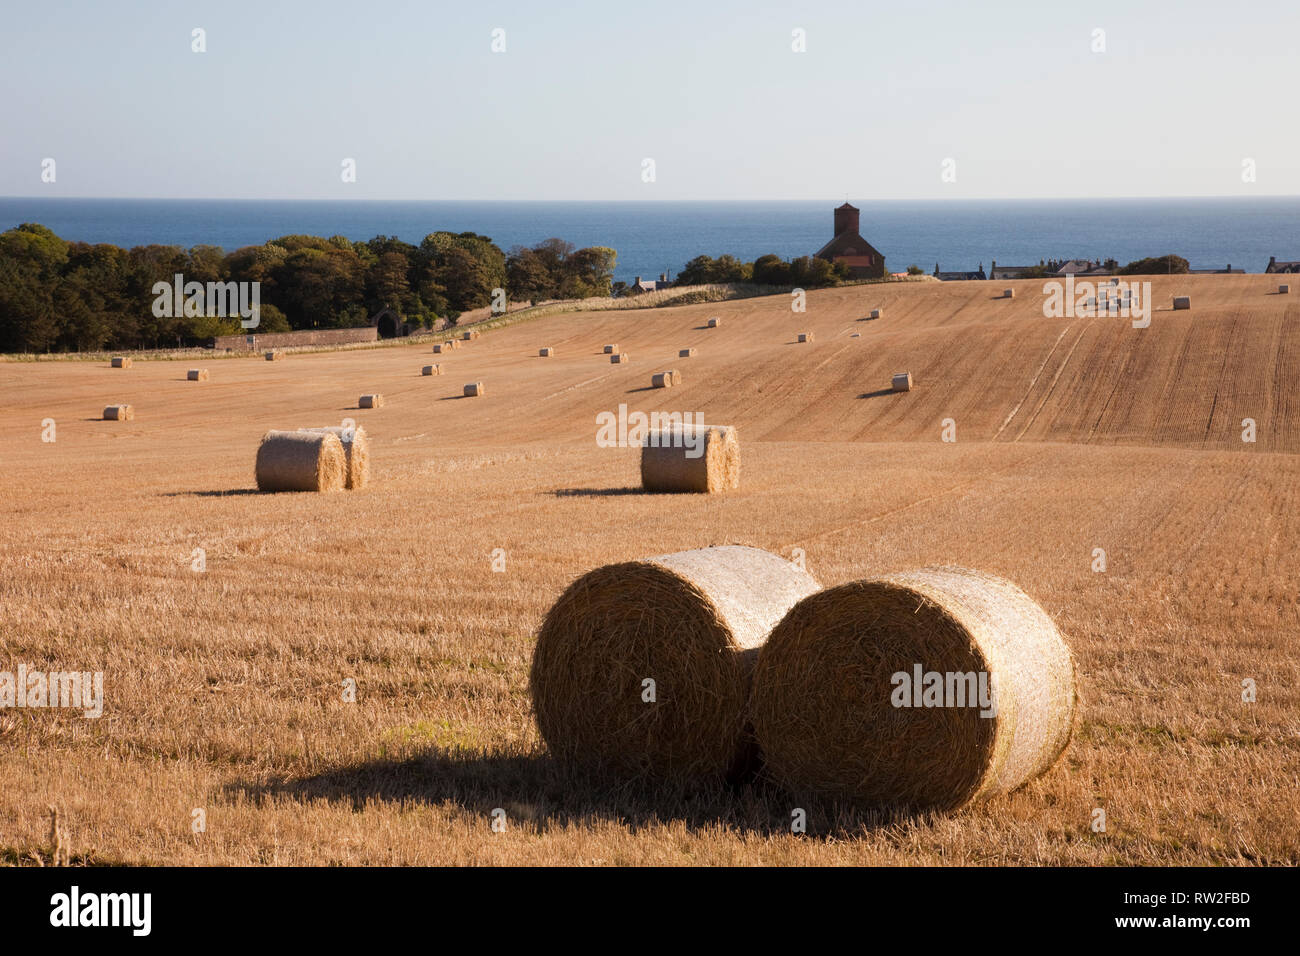 View across golden field of round straw bales to village church on east coast. St Abbs, Berwickshire, Scottish Borders, Scotland, UK, Britain Stock Photo